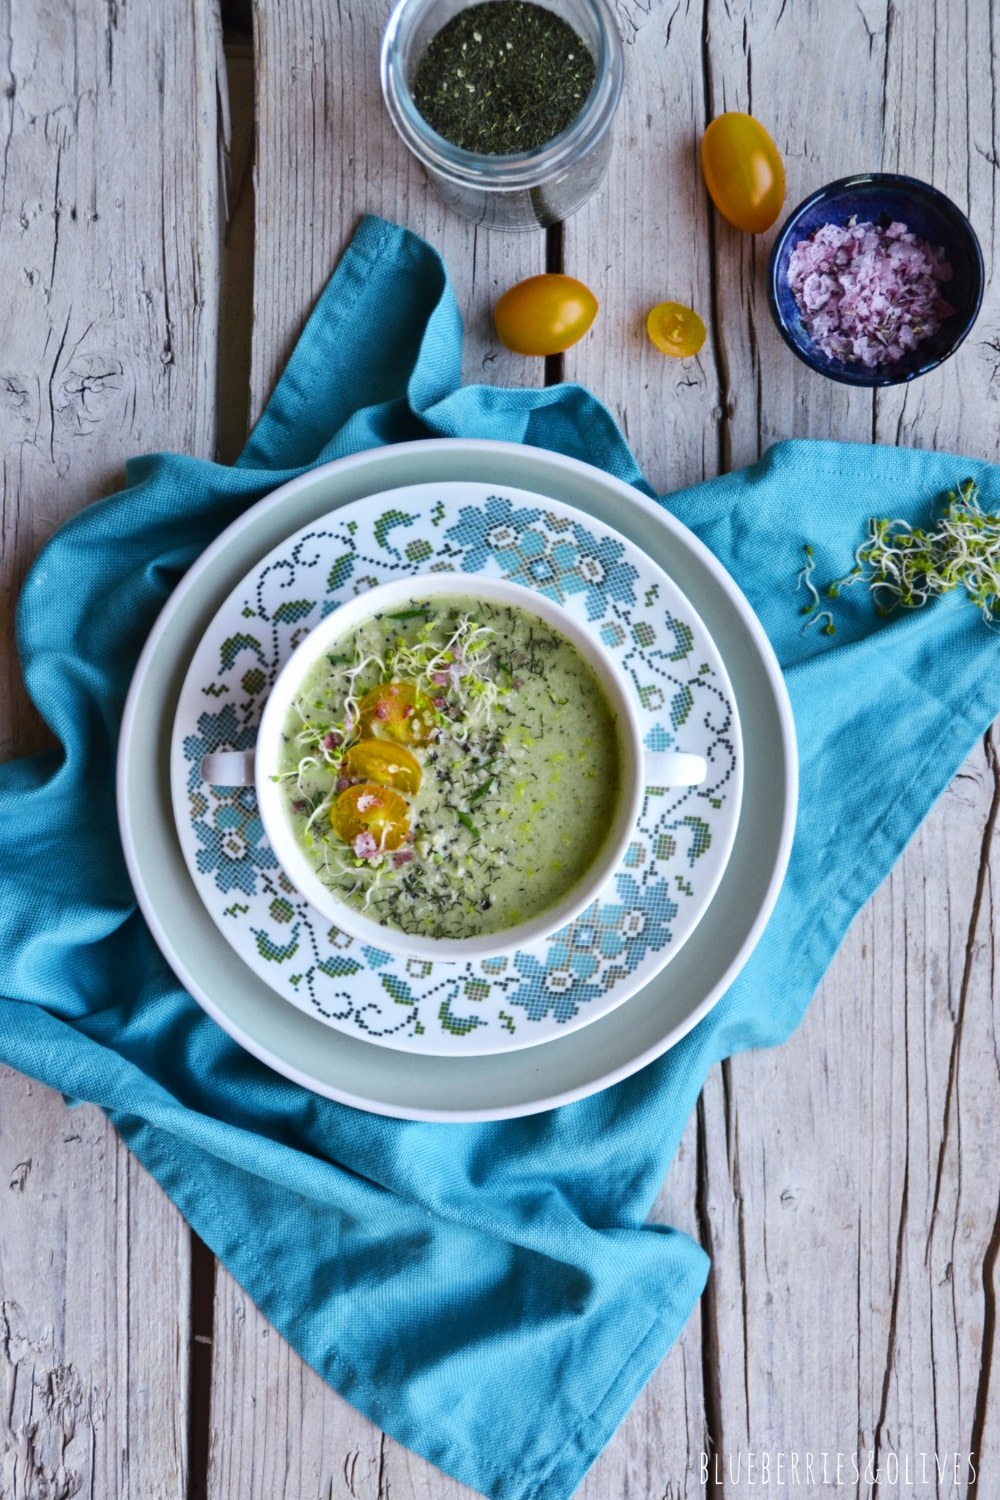 flat lay cold raw soup in vintage colorful porcelain bowl, blue tablecloth, yellow tomatoes